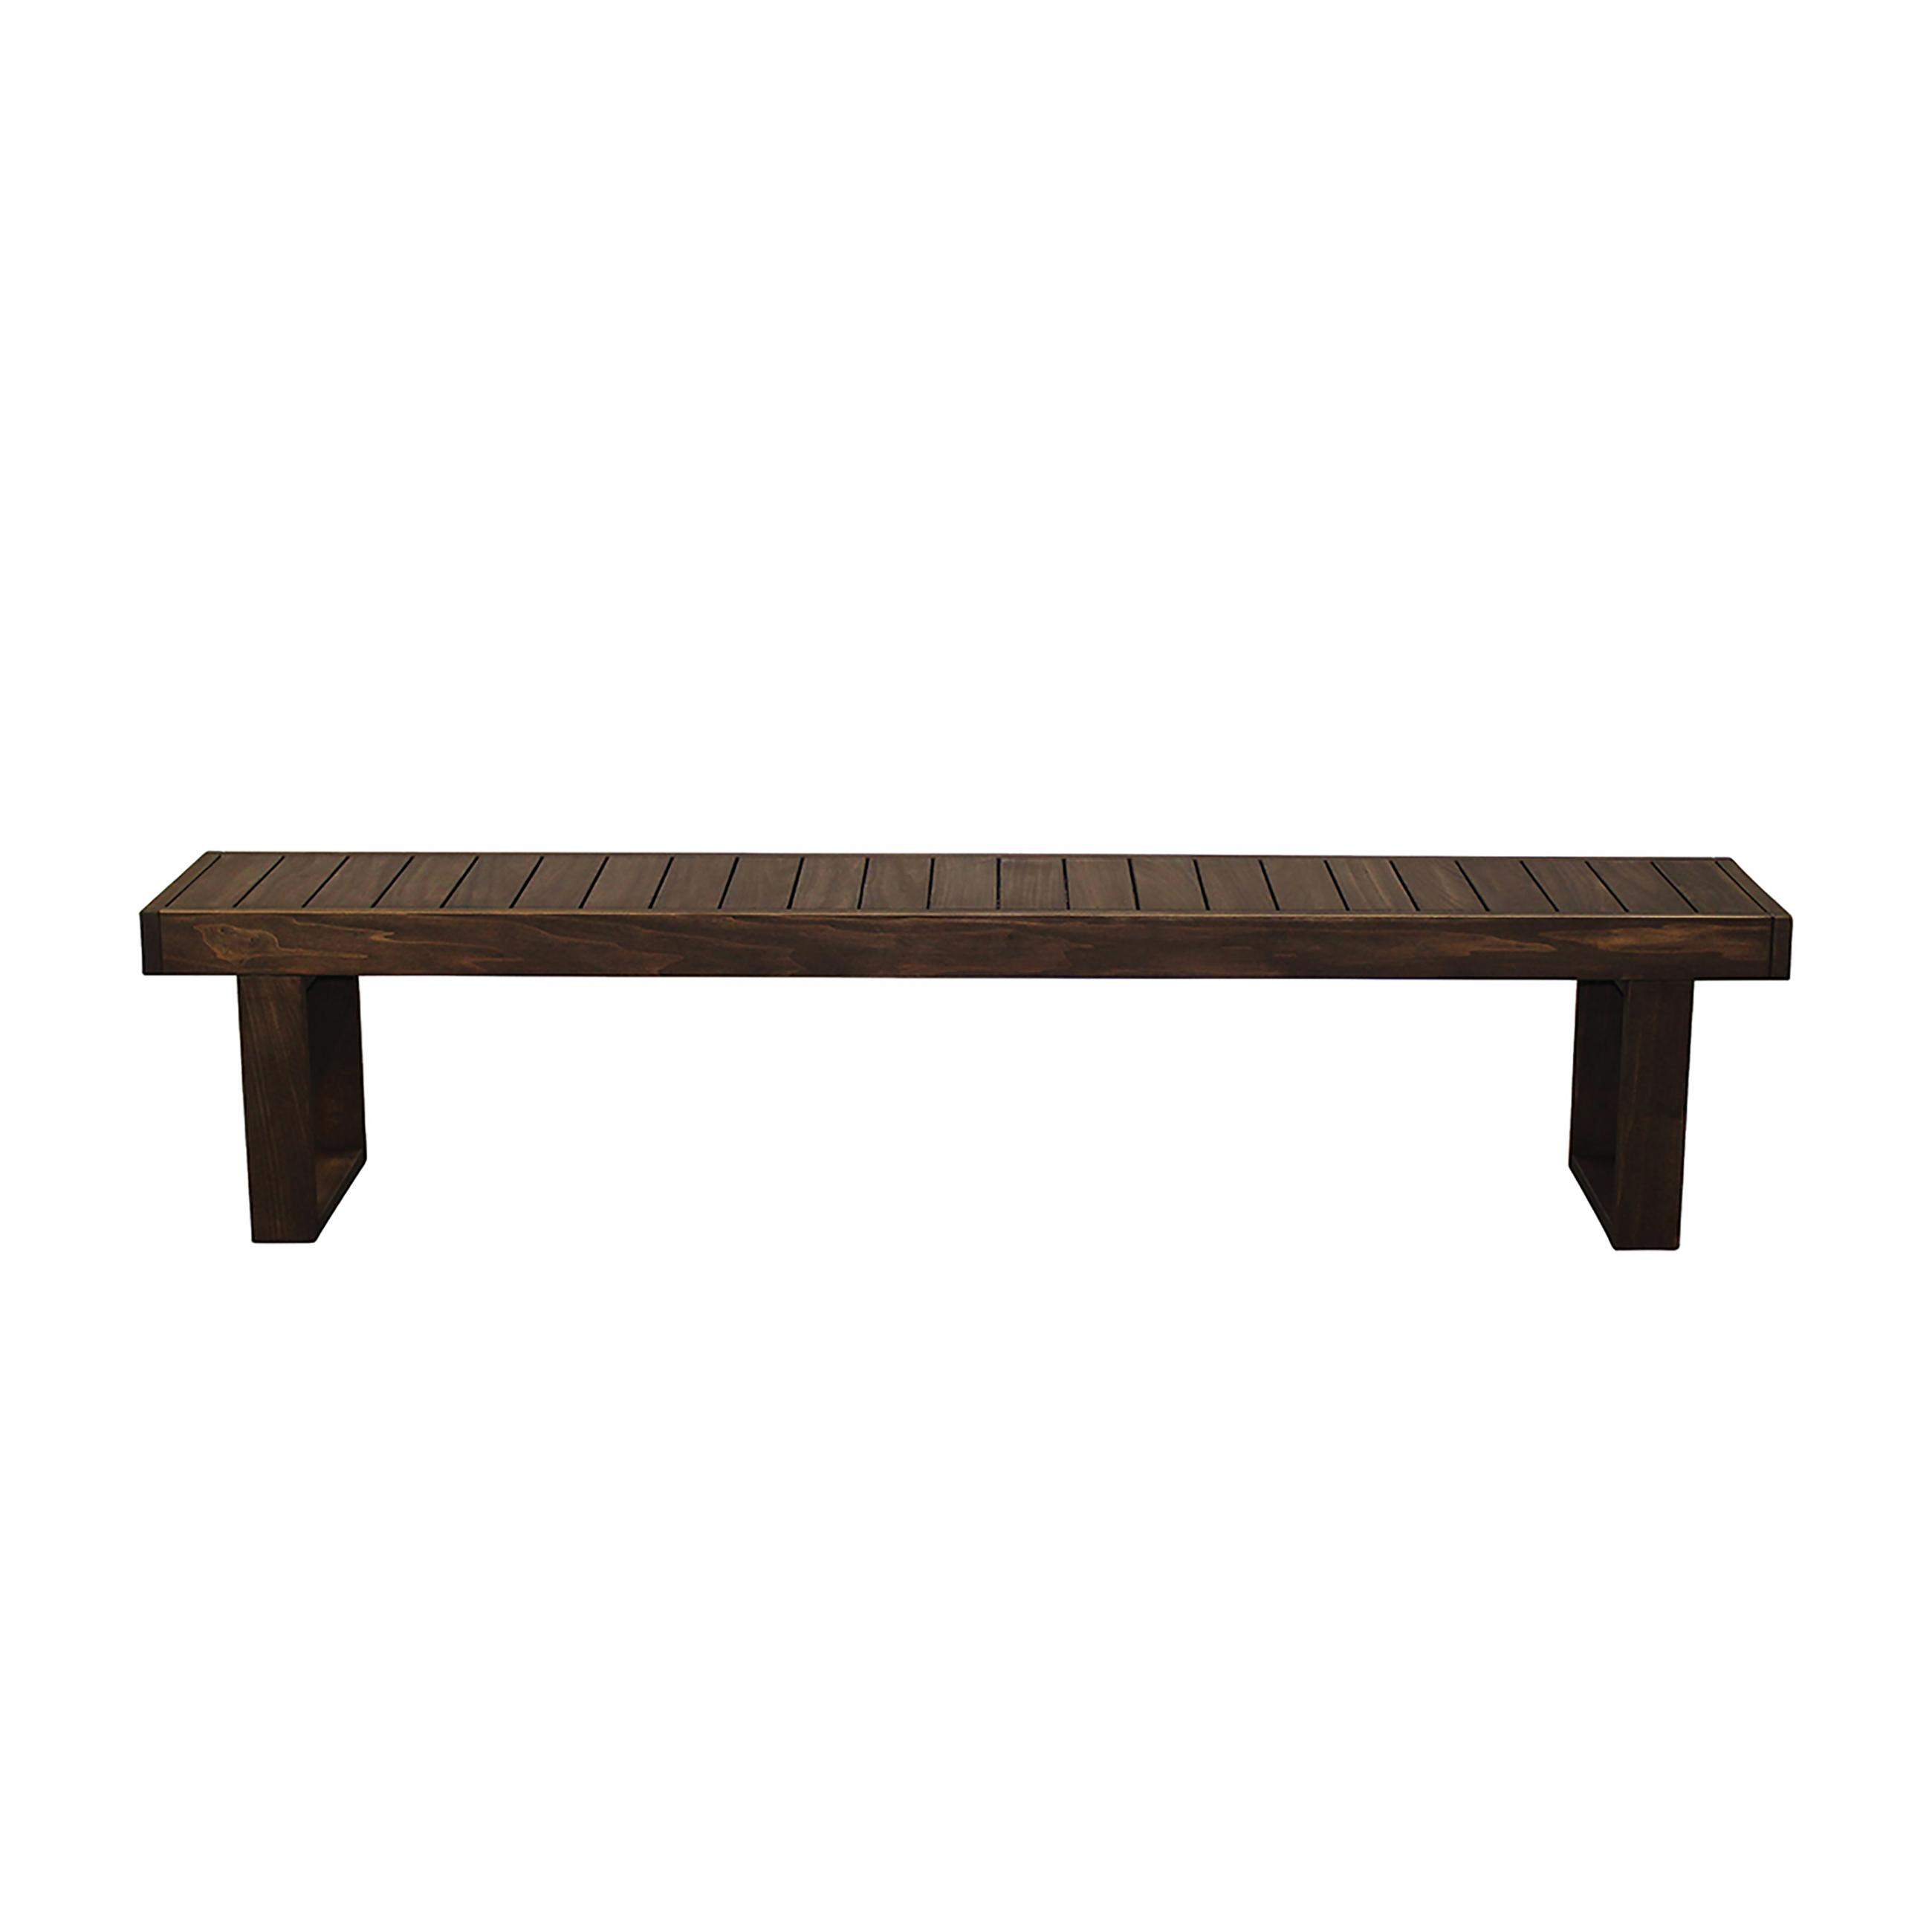 Incredible Walnut Bench 8 Peak Event Services Gmtry Best Dining Table And Chair Ideas Images Gmtryco